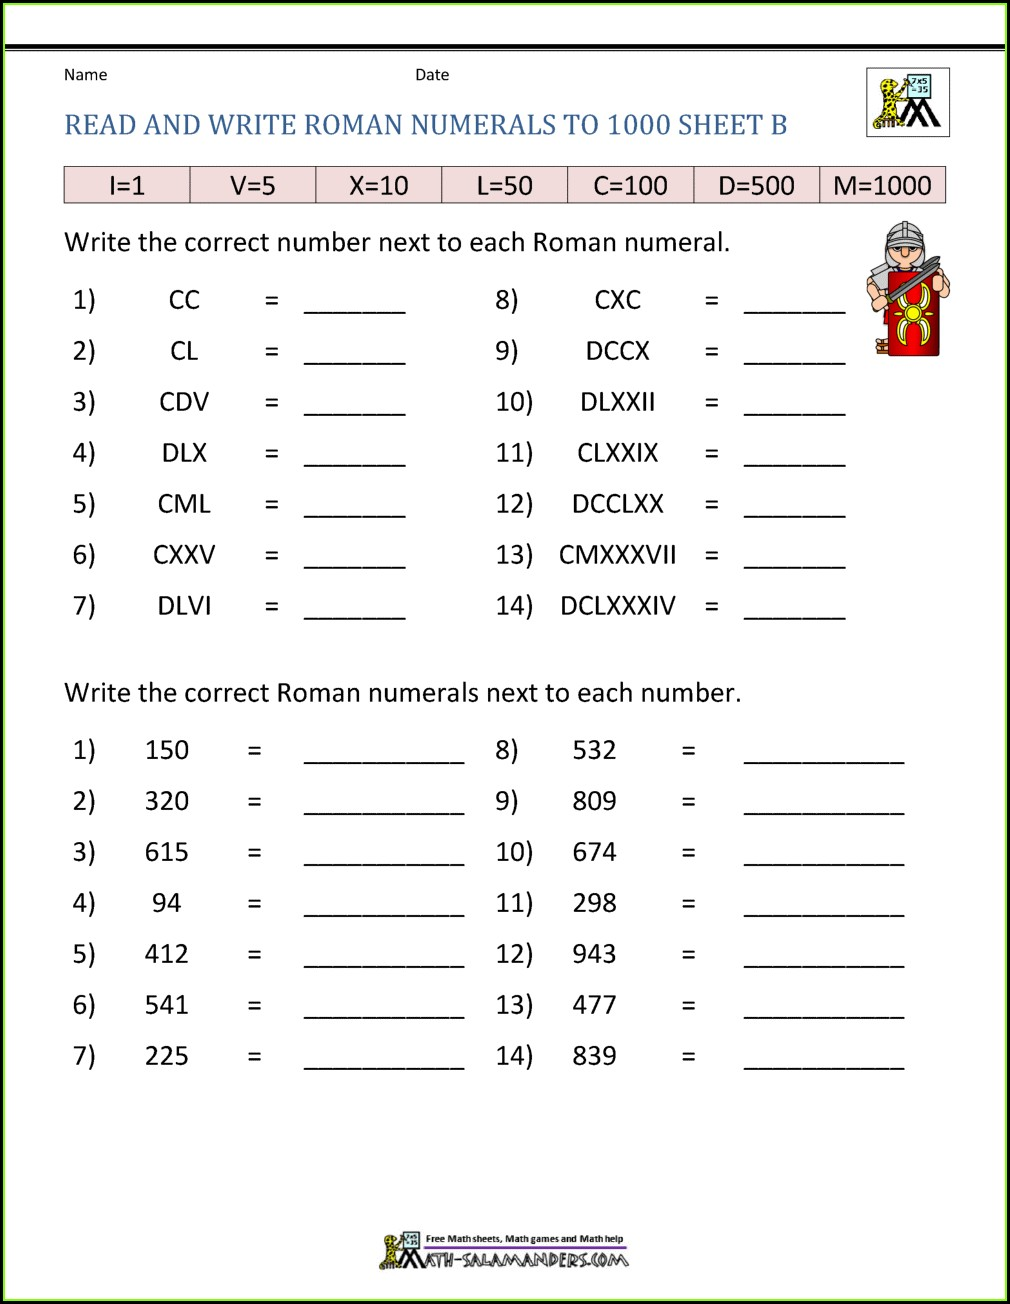 Roman Numerals Worksheet For Class 3